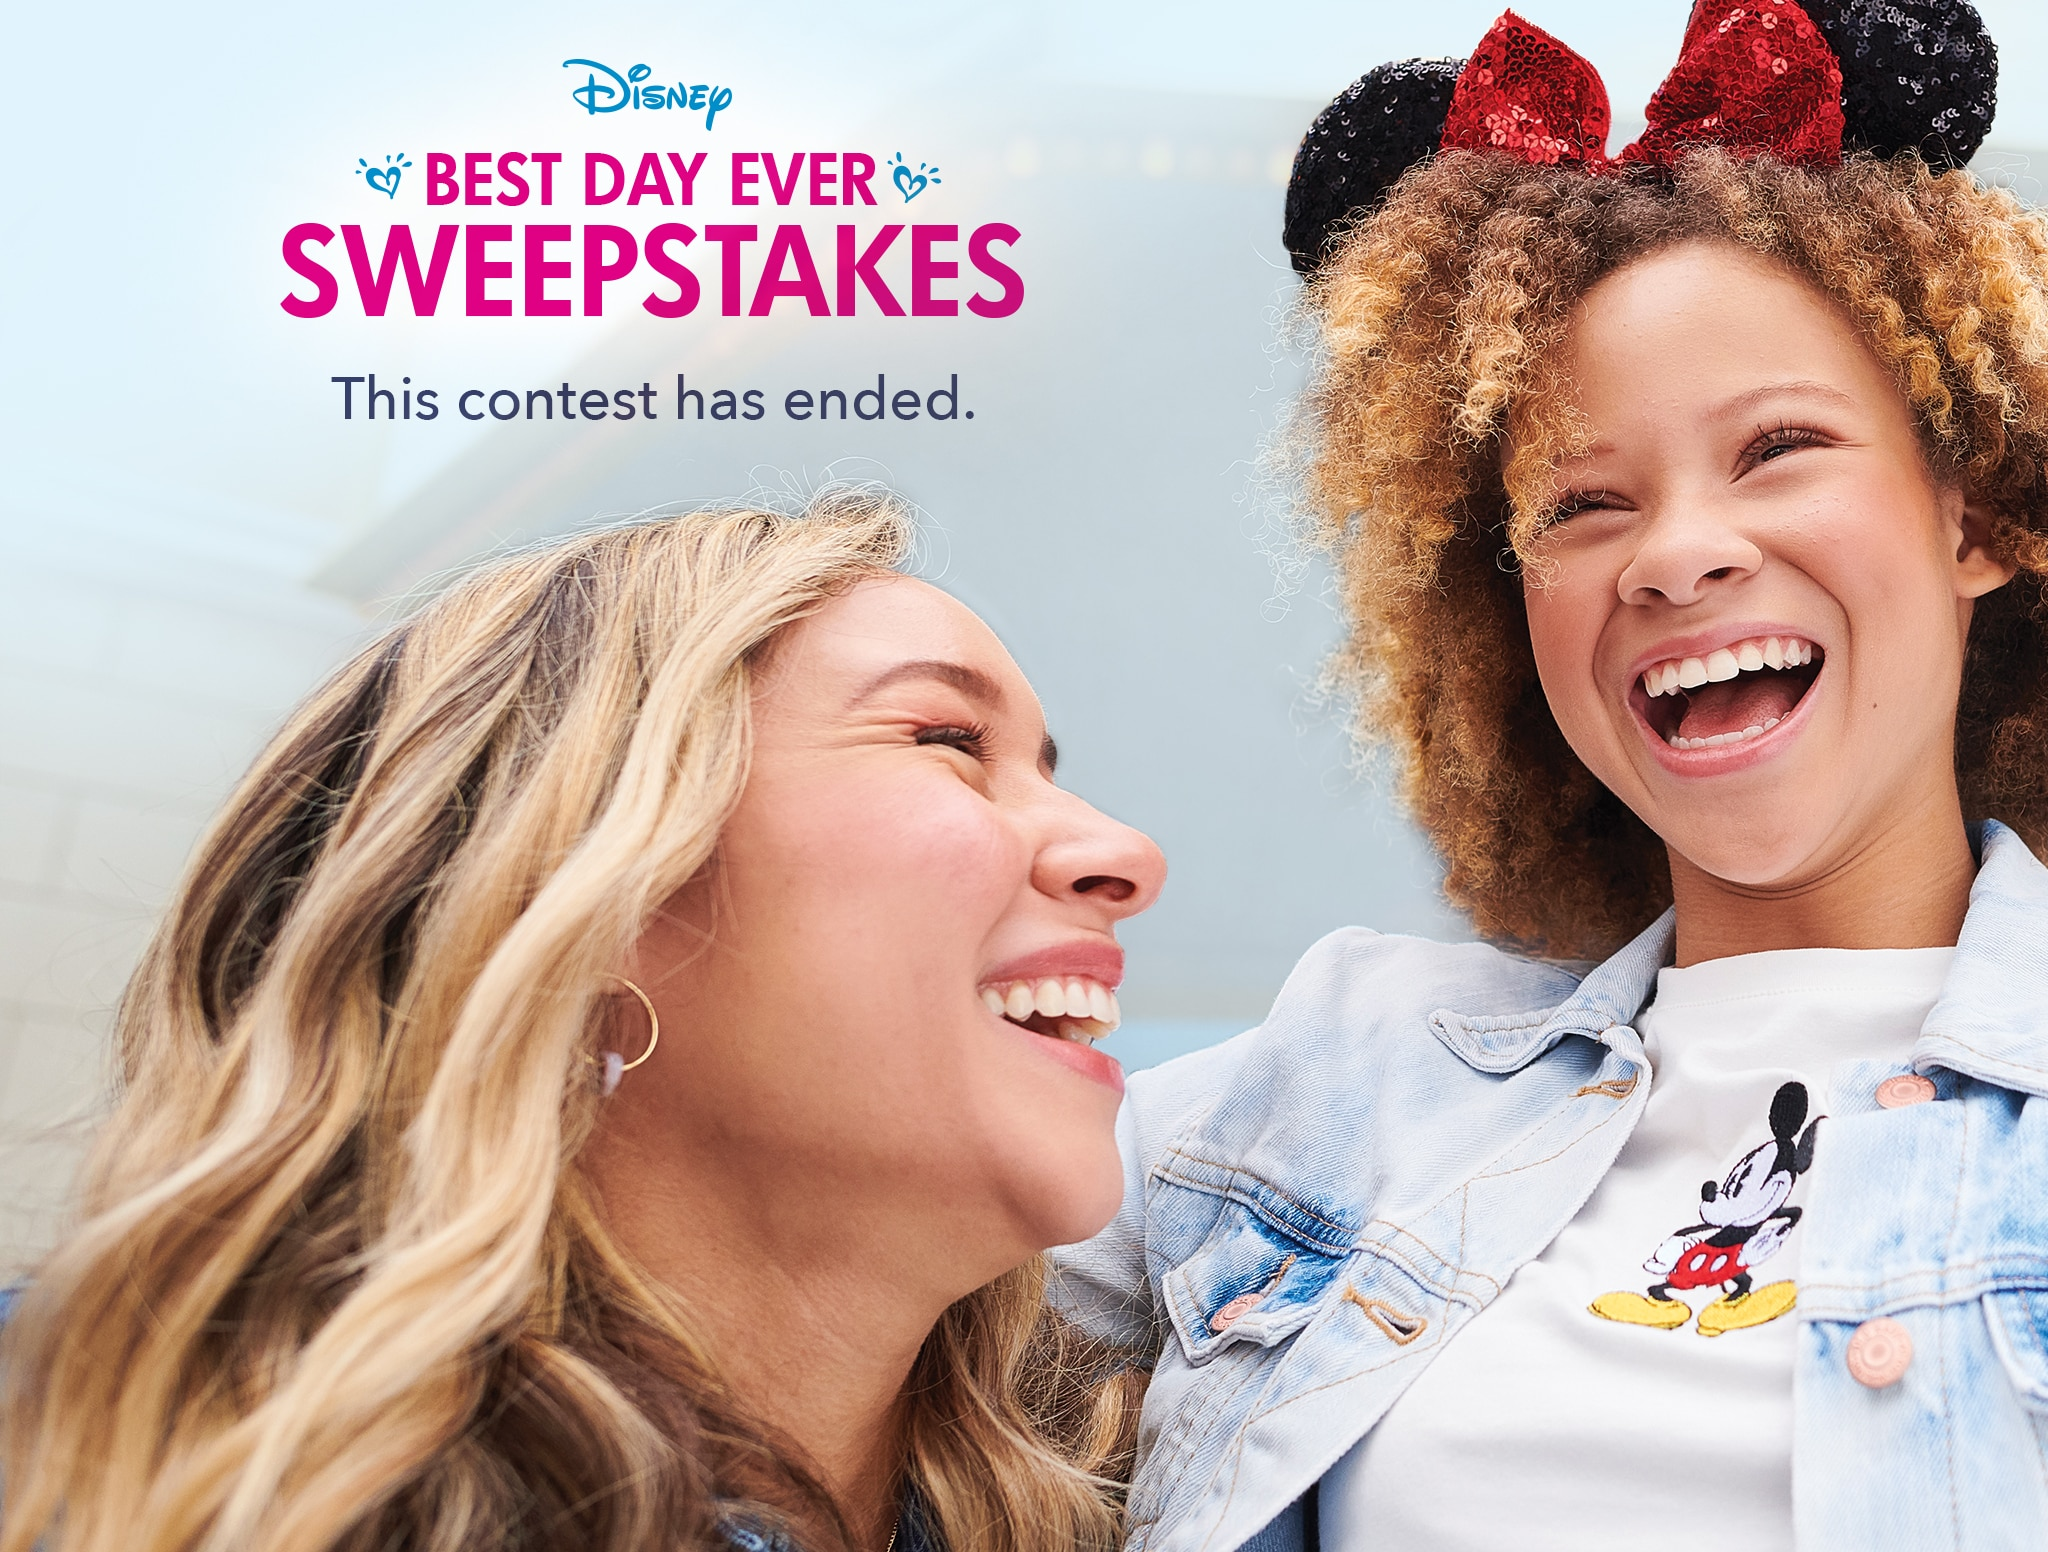 Disney Best Day Ever Sweepstakes. This contest has ended.